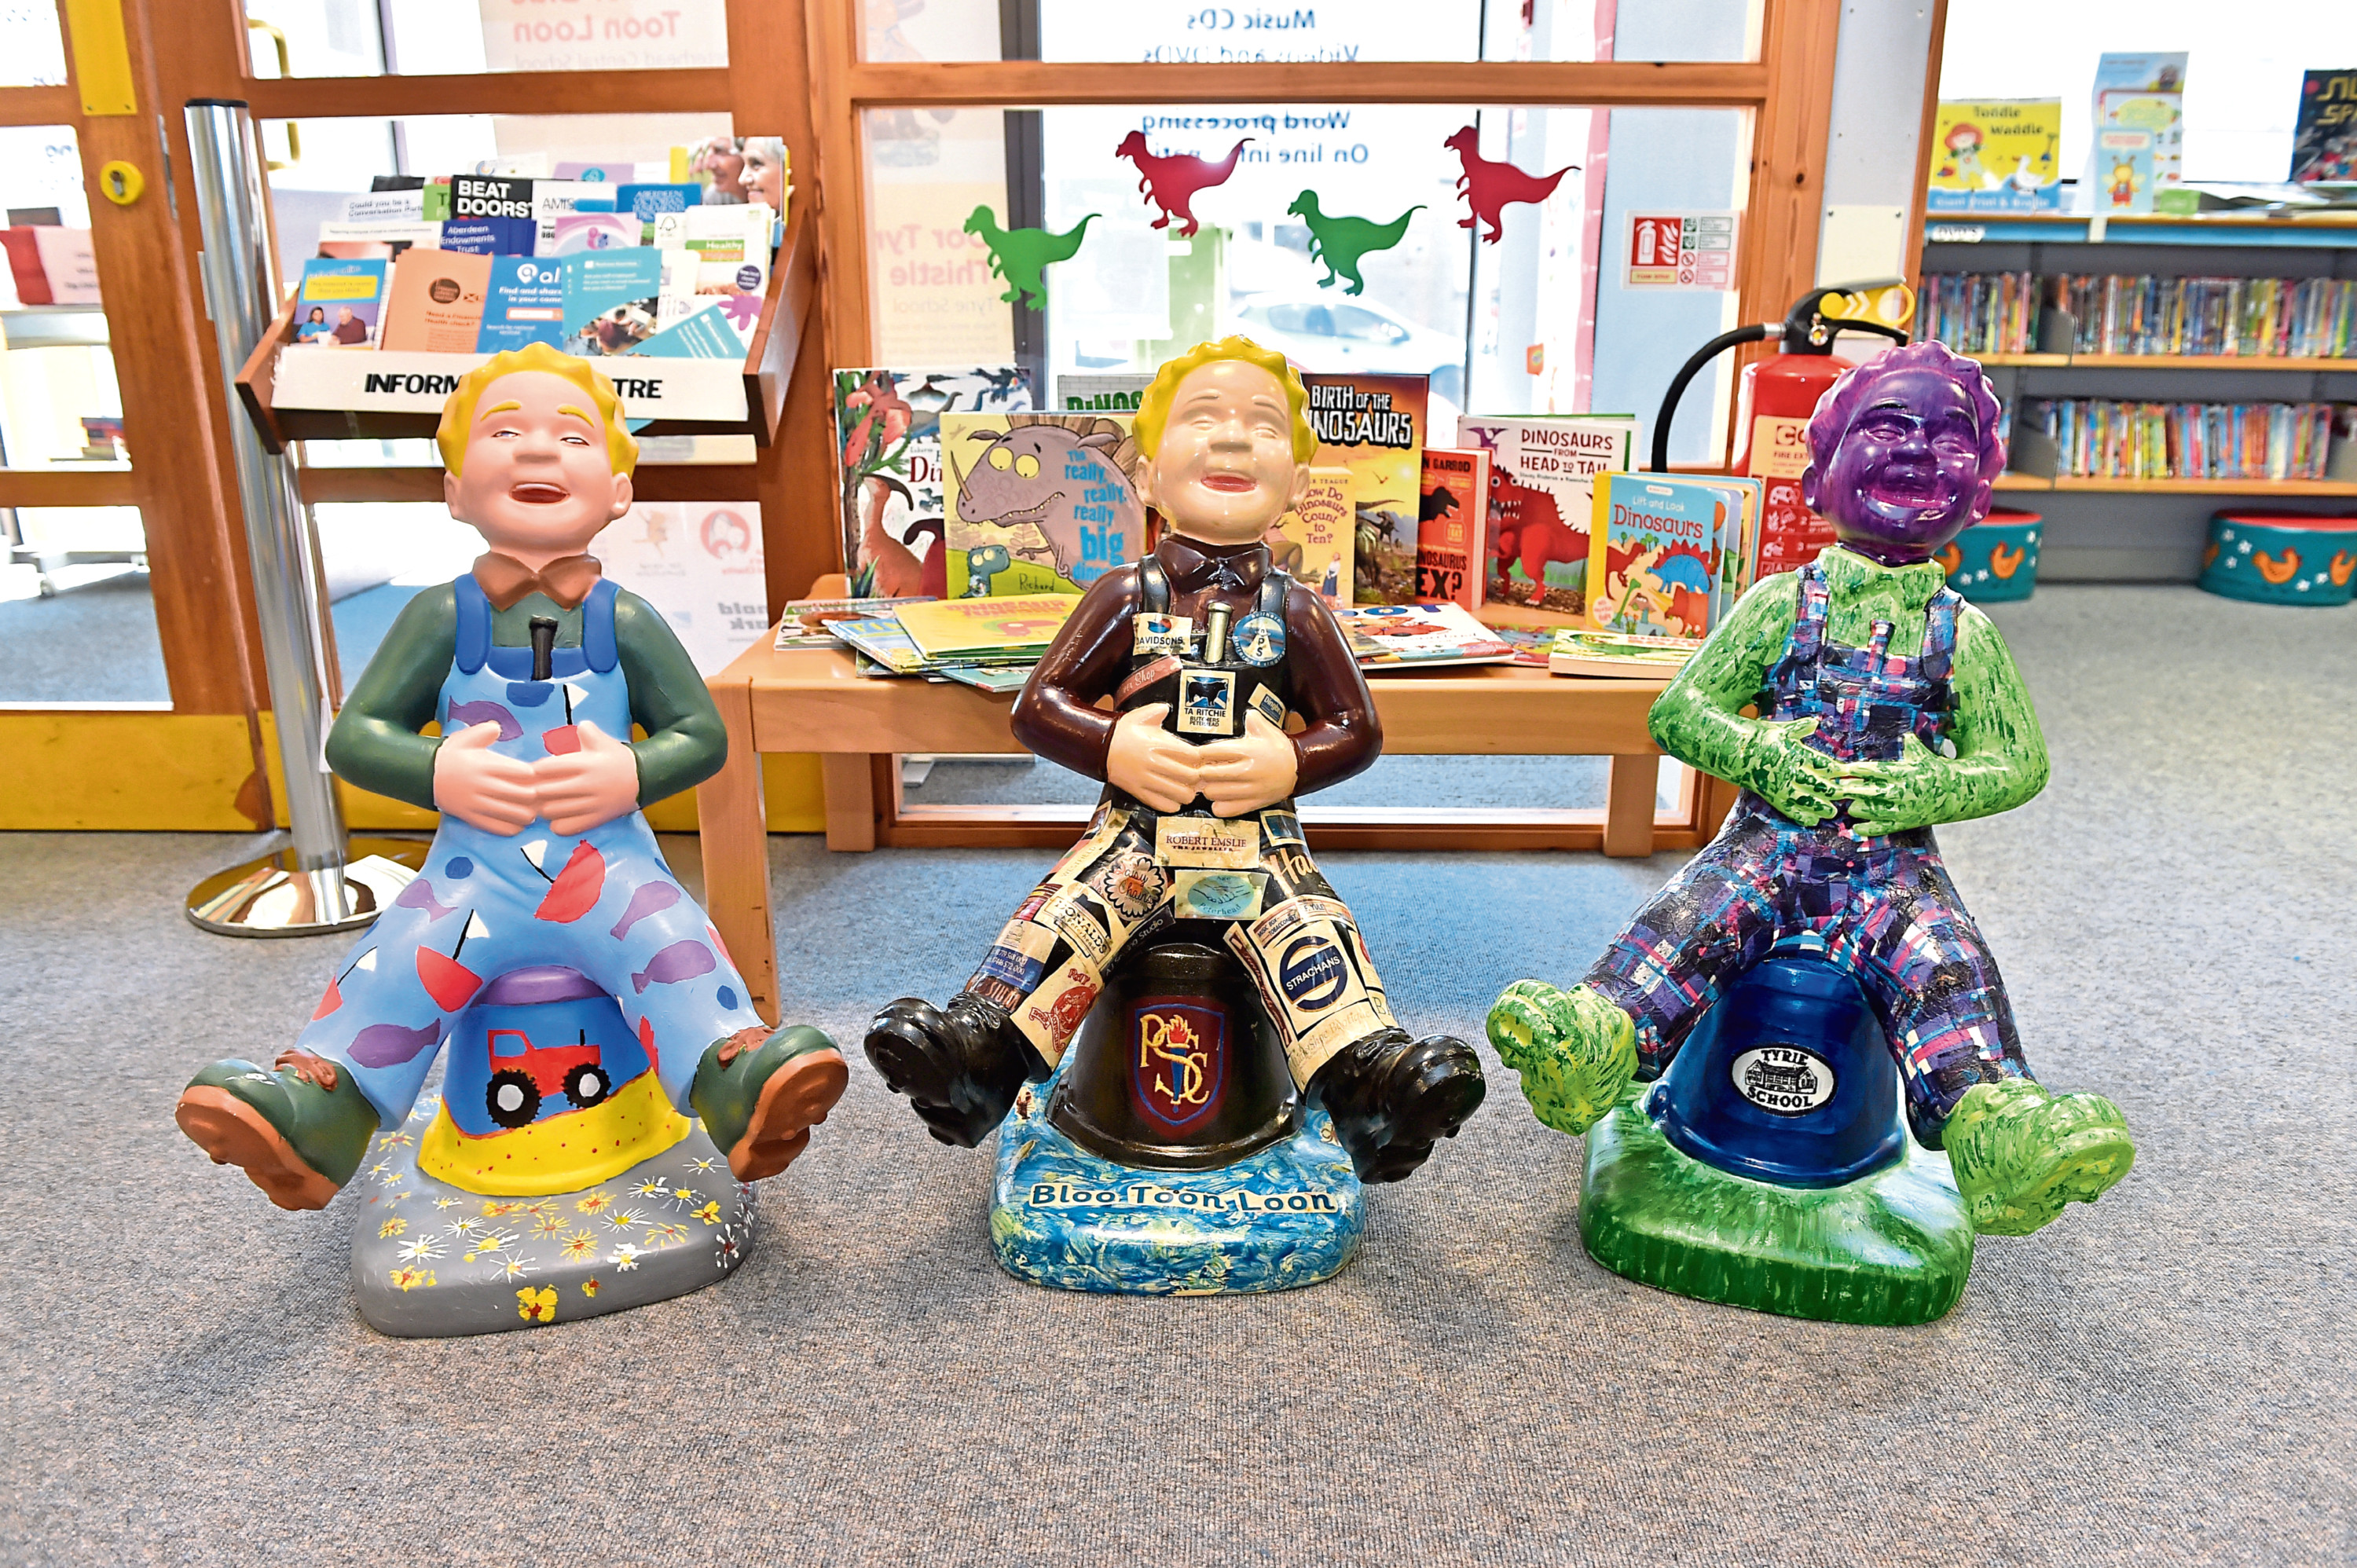 The wee Oor Wullie Sculptures are available to visit in libraries across the city